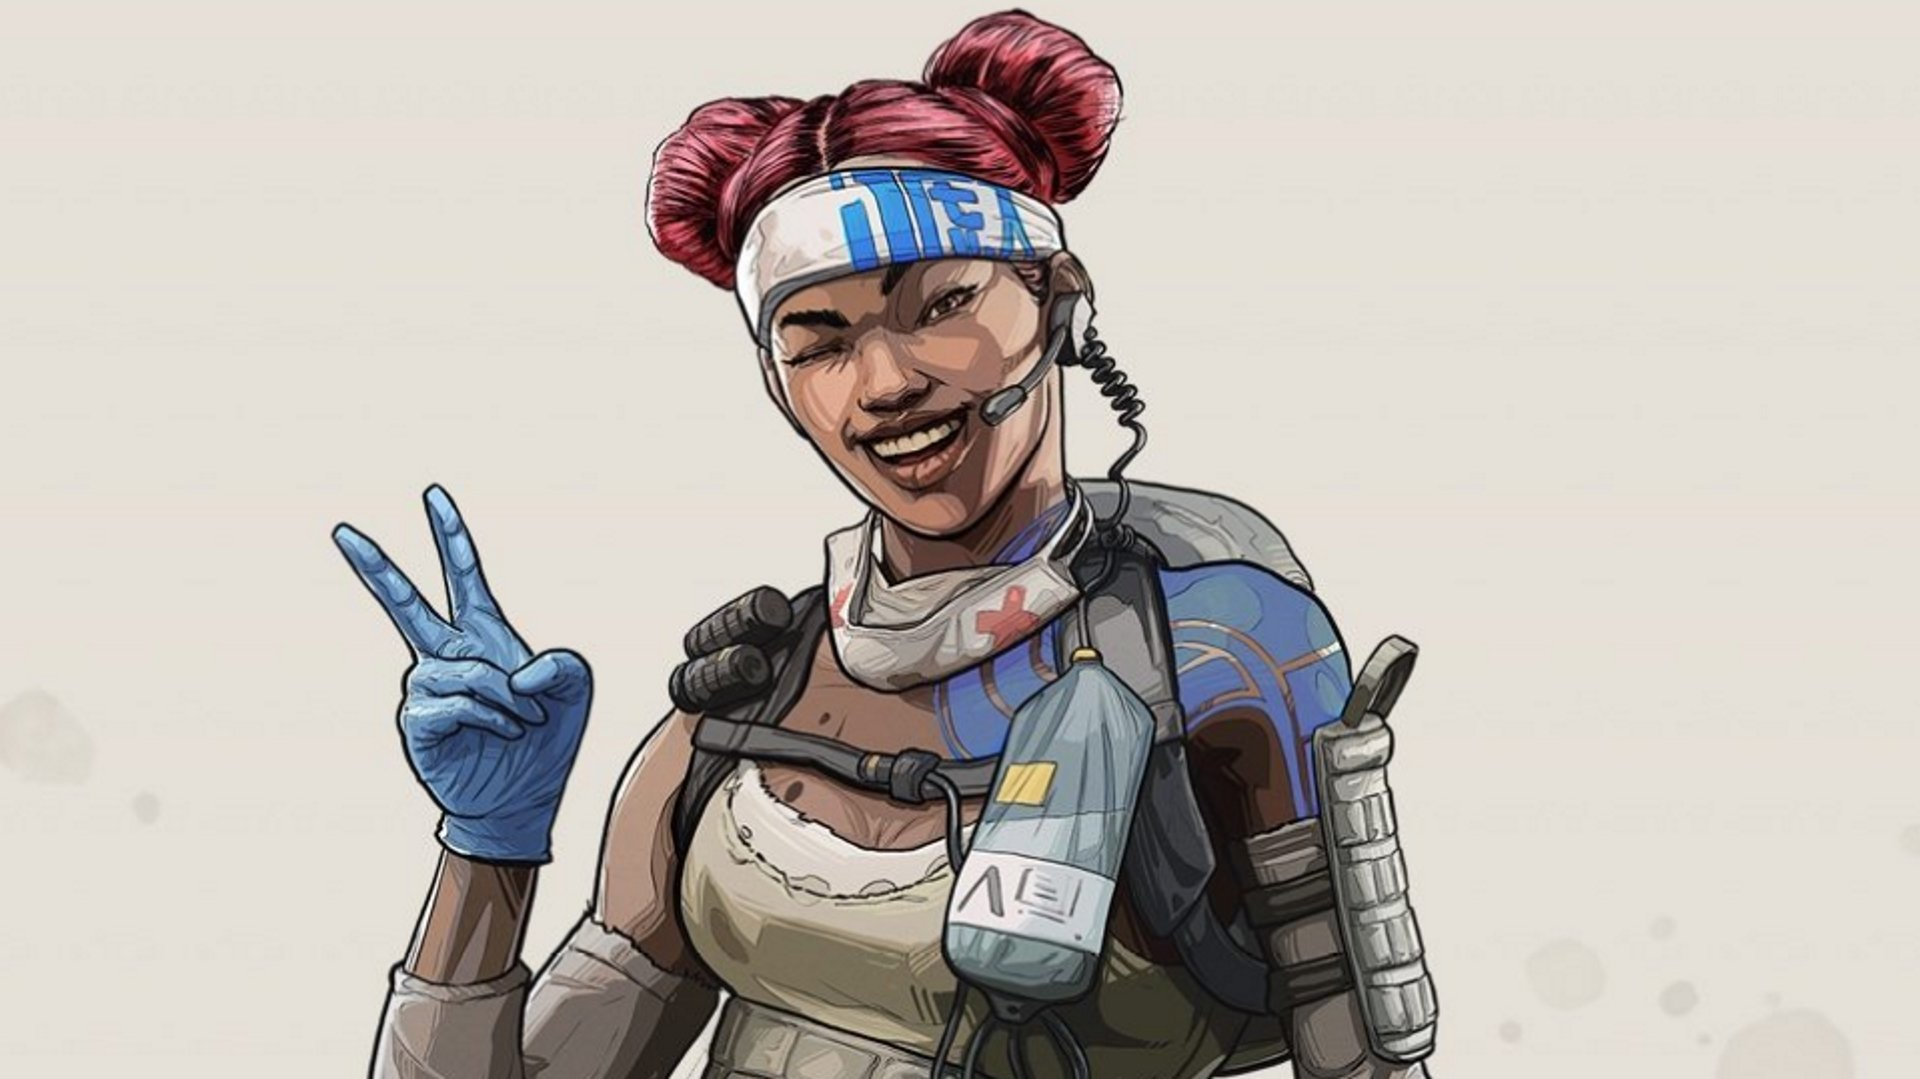 Who made Apex Legends?